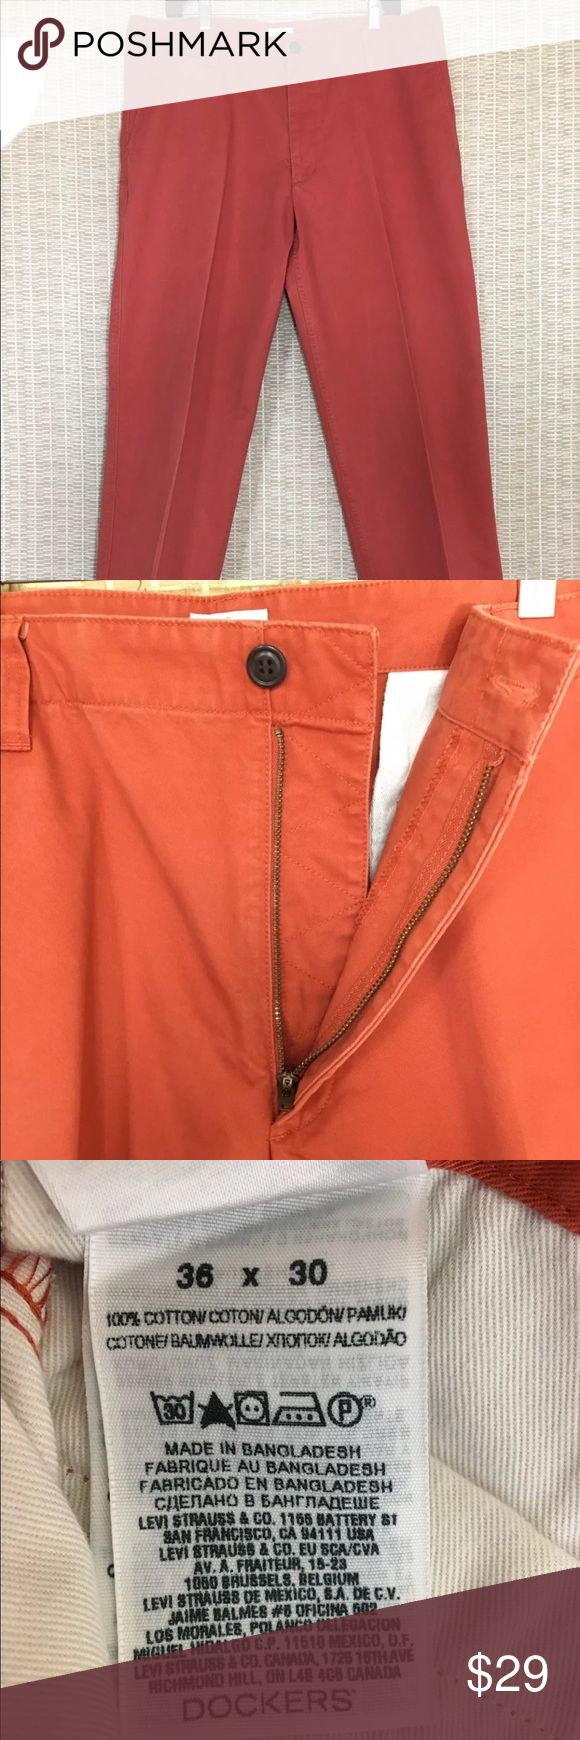 "Men's Docker Khaki slacks BRAND:     DOCKERS  CONDITION:     EUC  COLOR:    BURNT ORANGE   MATERIALS:    100% COTTON   SIZE:     36X30  FEATURES:   BELT LOOPS, FLAT FRONT, 5 POCKETS, BROWN FRONT BUTTON, ZIP UP   MEASUREMENTS:   WAIST (FLAT DOUBLE, NOT STRETCHED):     36""  INSEAM:   30""    MEASUREMENTS ARE ALL APPROXIMATE Dockers Pants Chinos & Khakis"